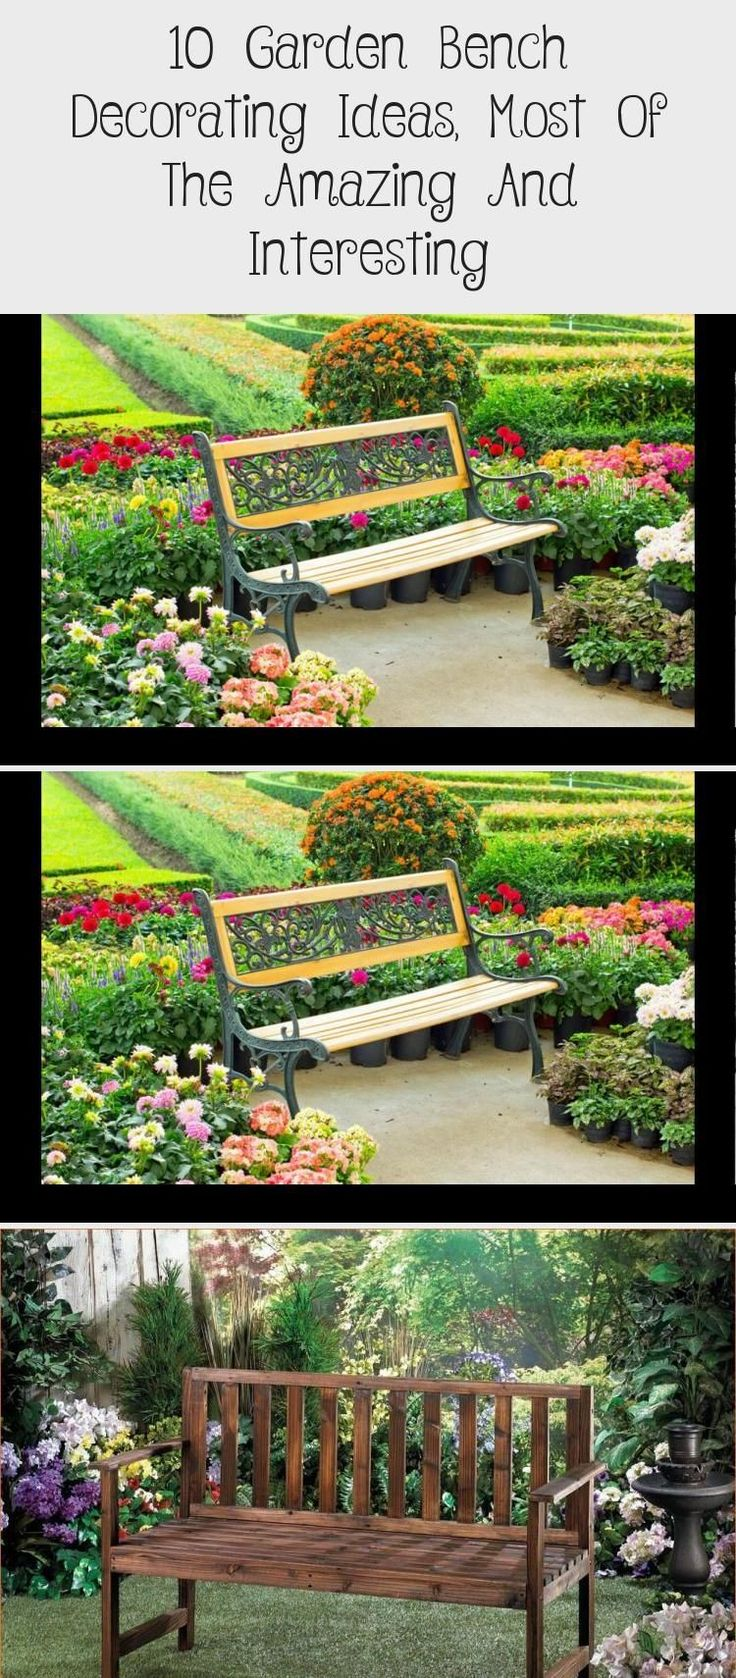 Garden Decorating Ideas On A Budget Easy Diy Projects Garden Bench Diy Colorful Landscaping Colorful Garden